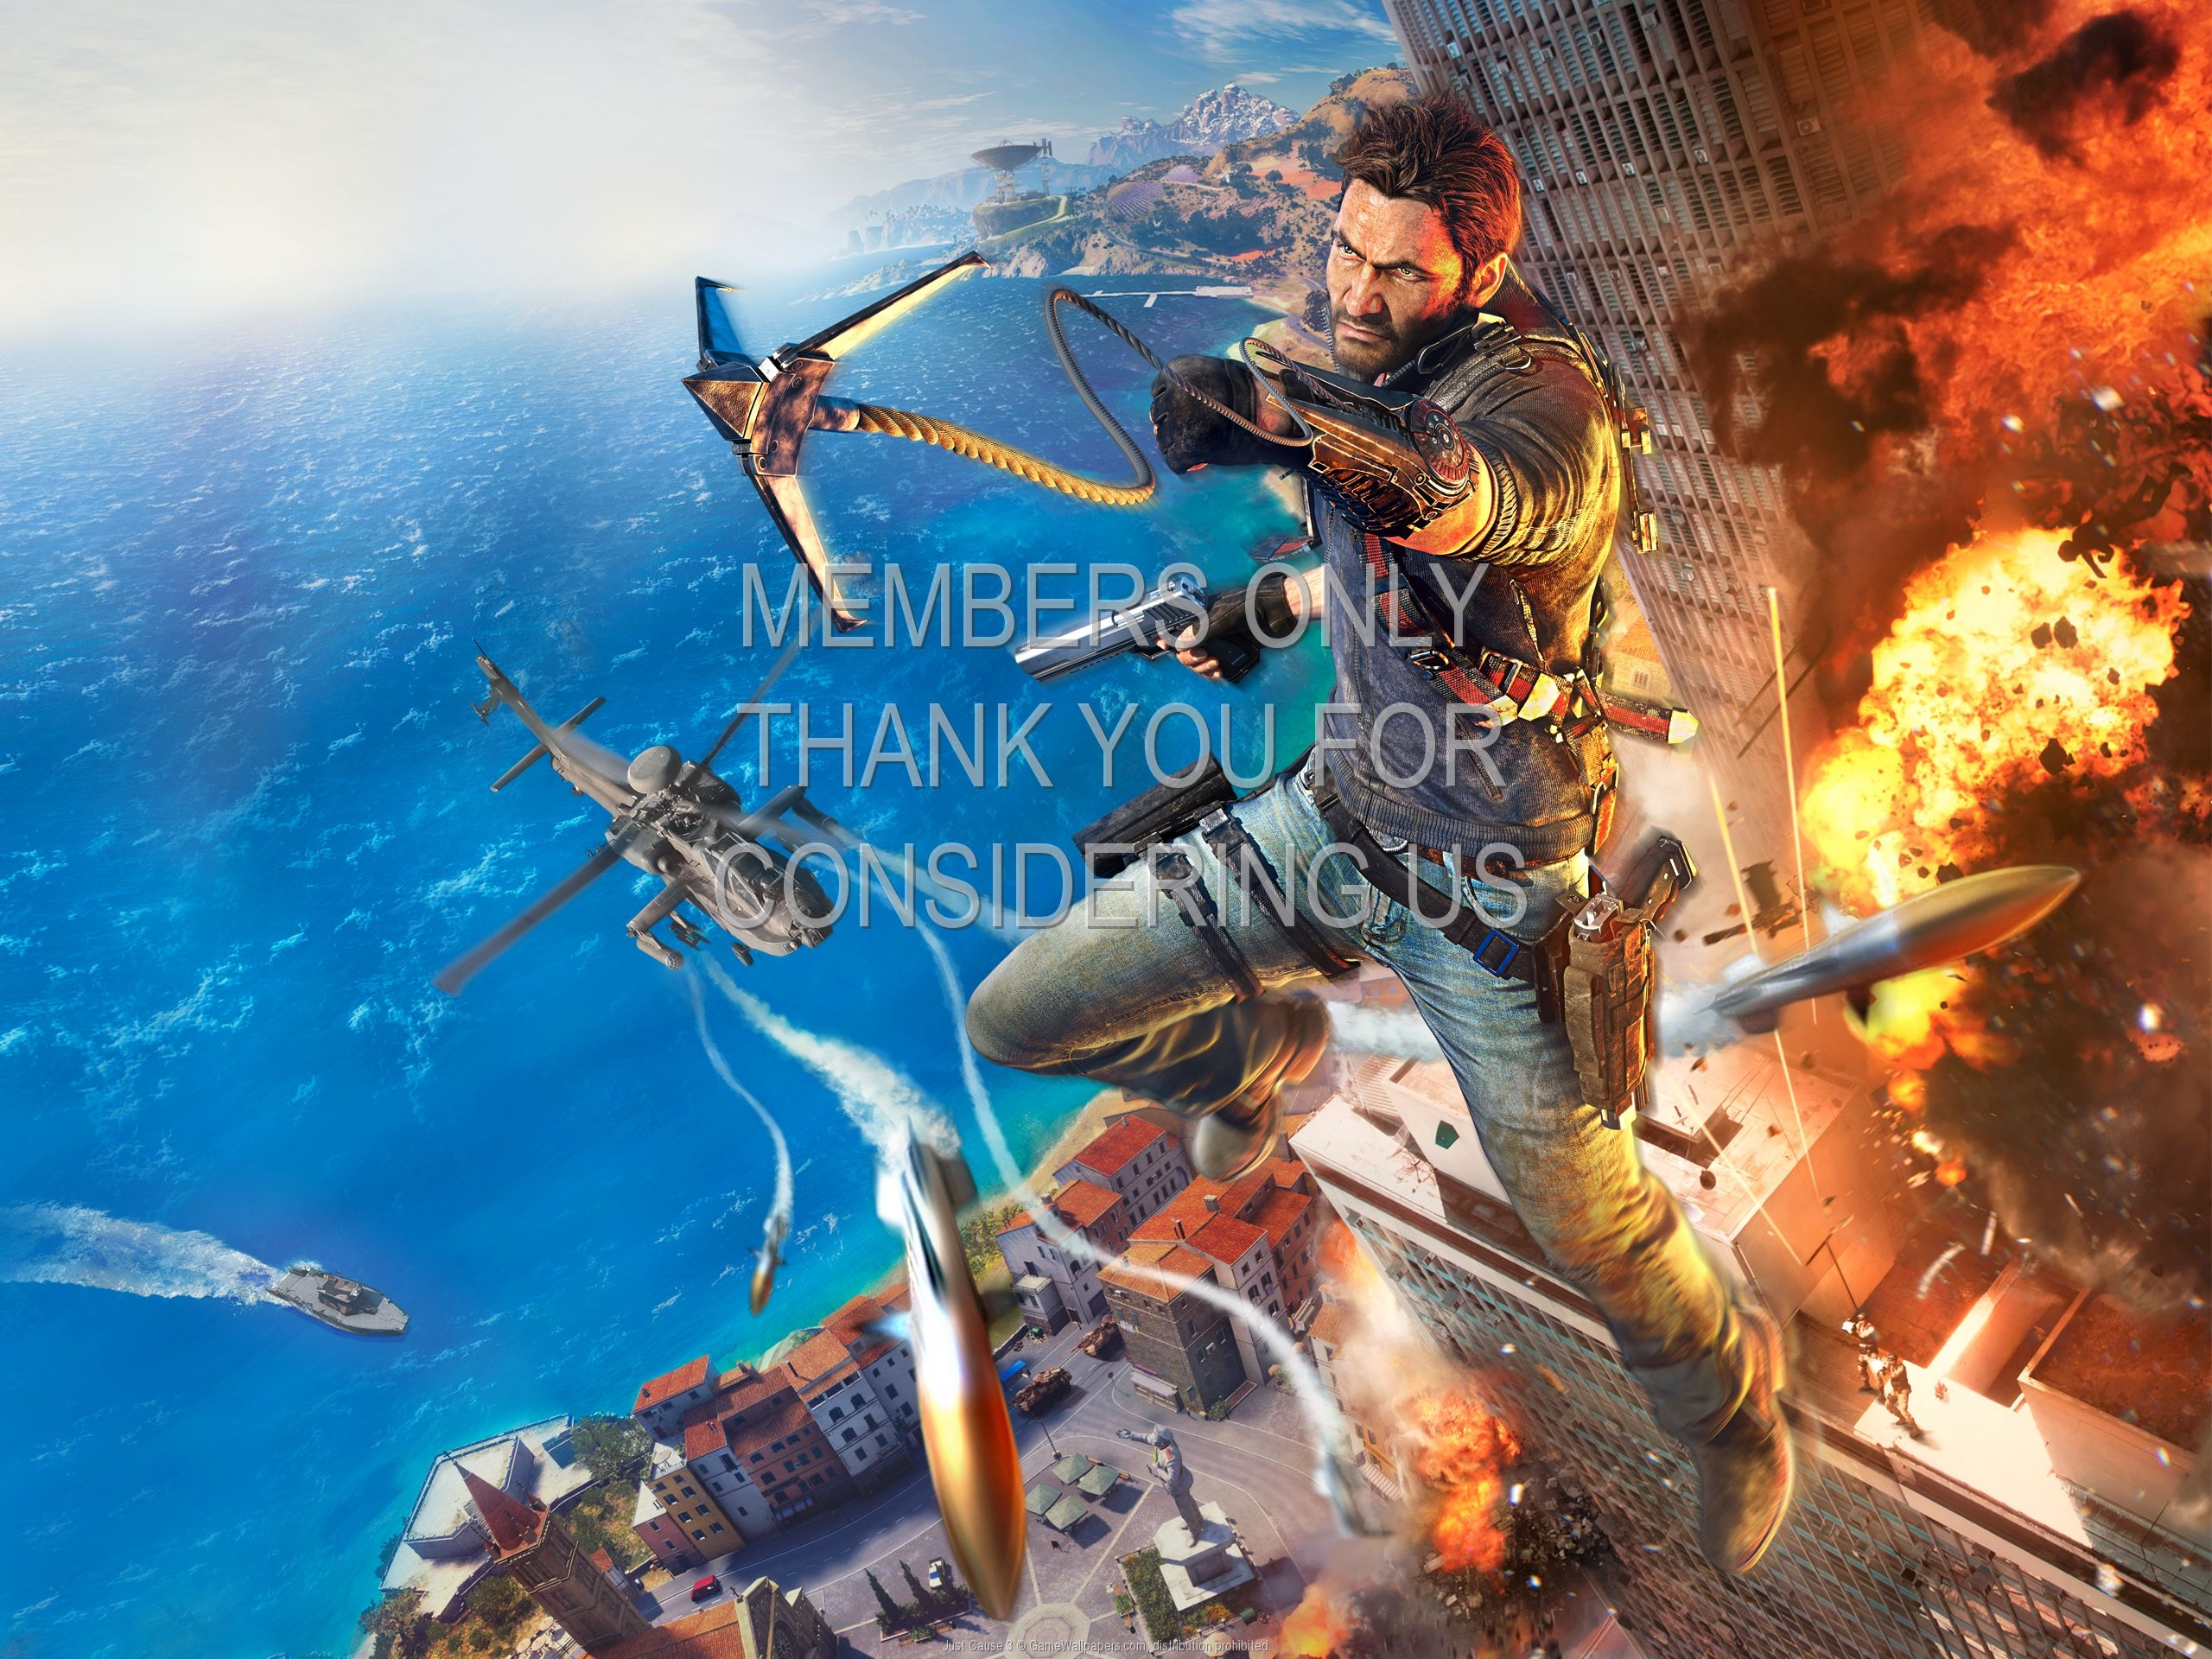 Just Cause 3 1920x1080 Mobile Wallpaper Or Background 03 Just Cause 3 Bath And Beyond Coupon Phone Logo